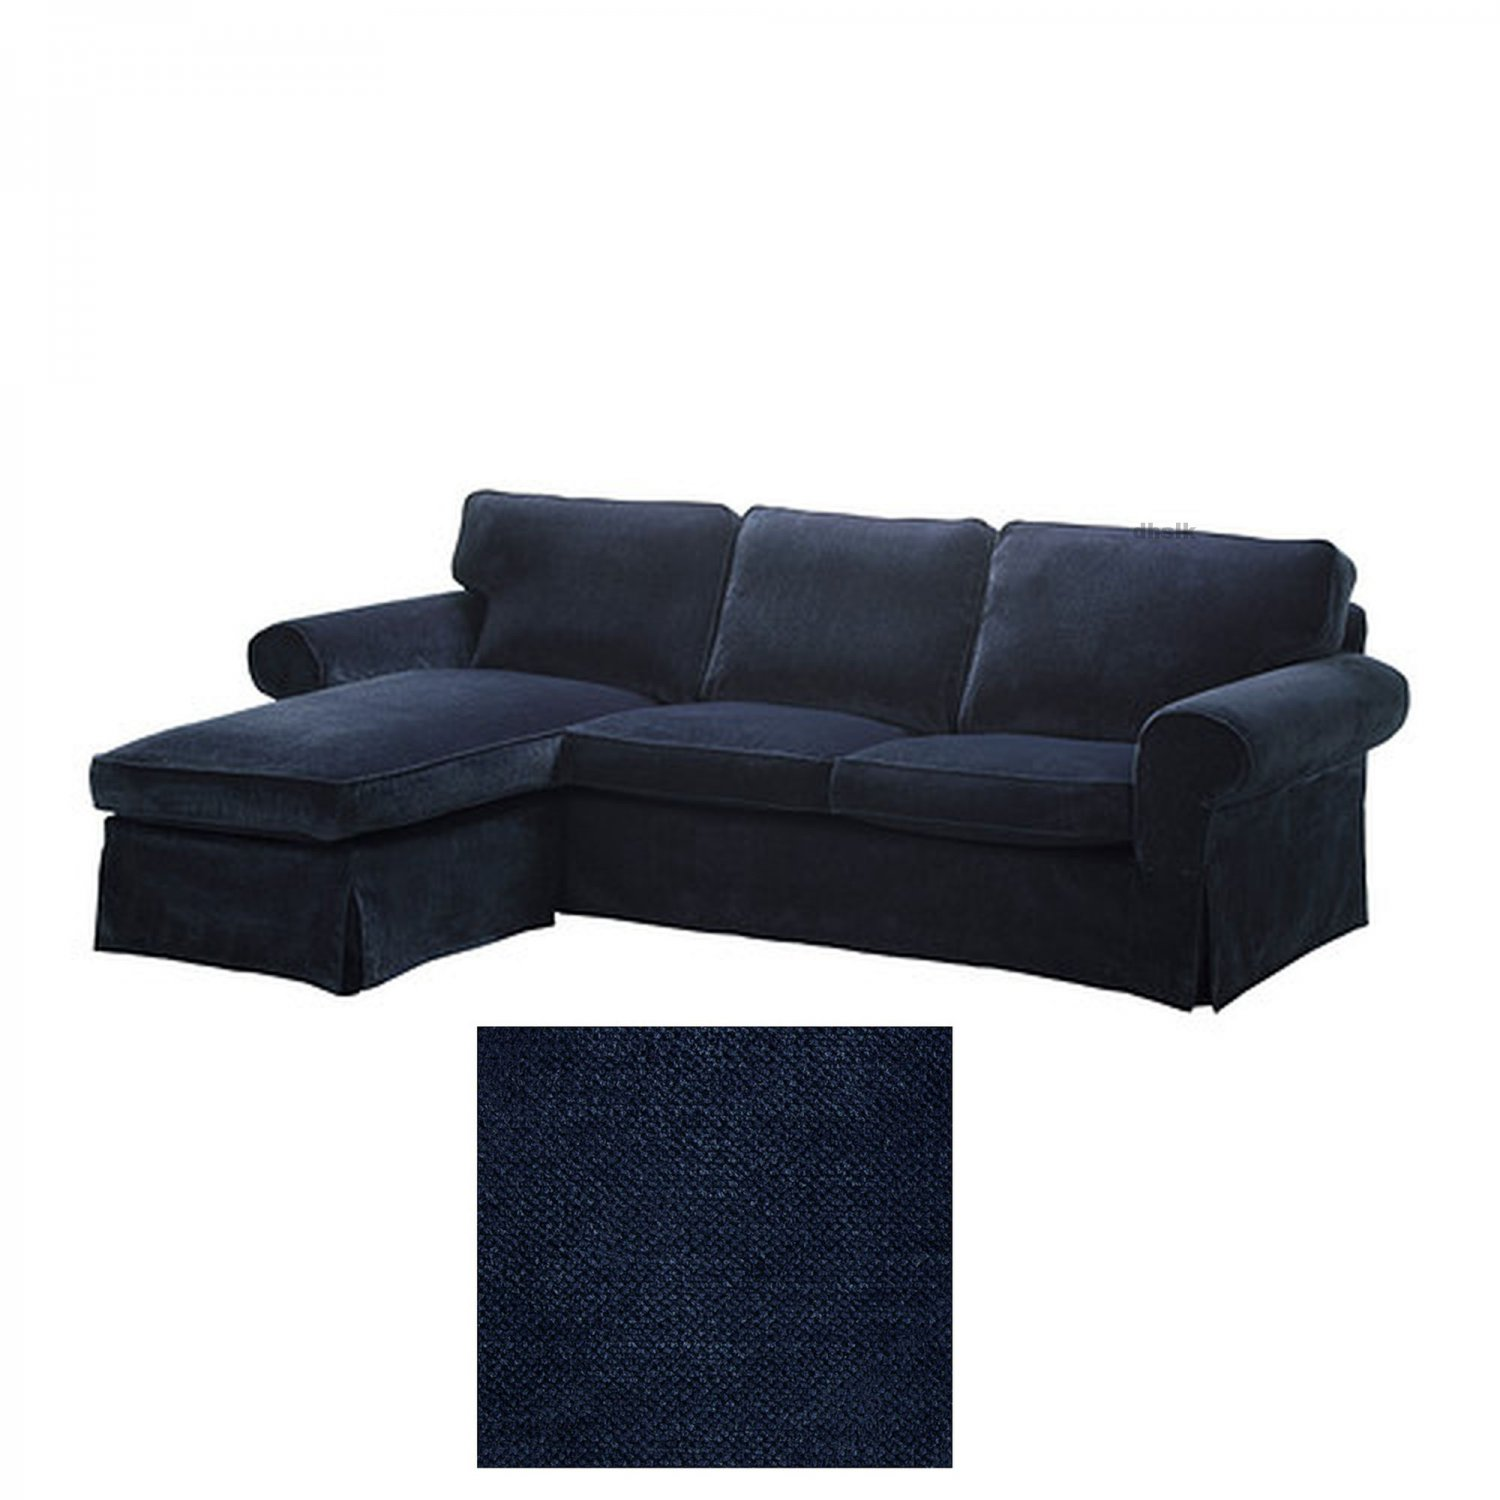 Ikea ektorp 2 seat loveseat sofa with chaise cover for Chaise lounge couch